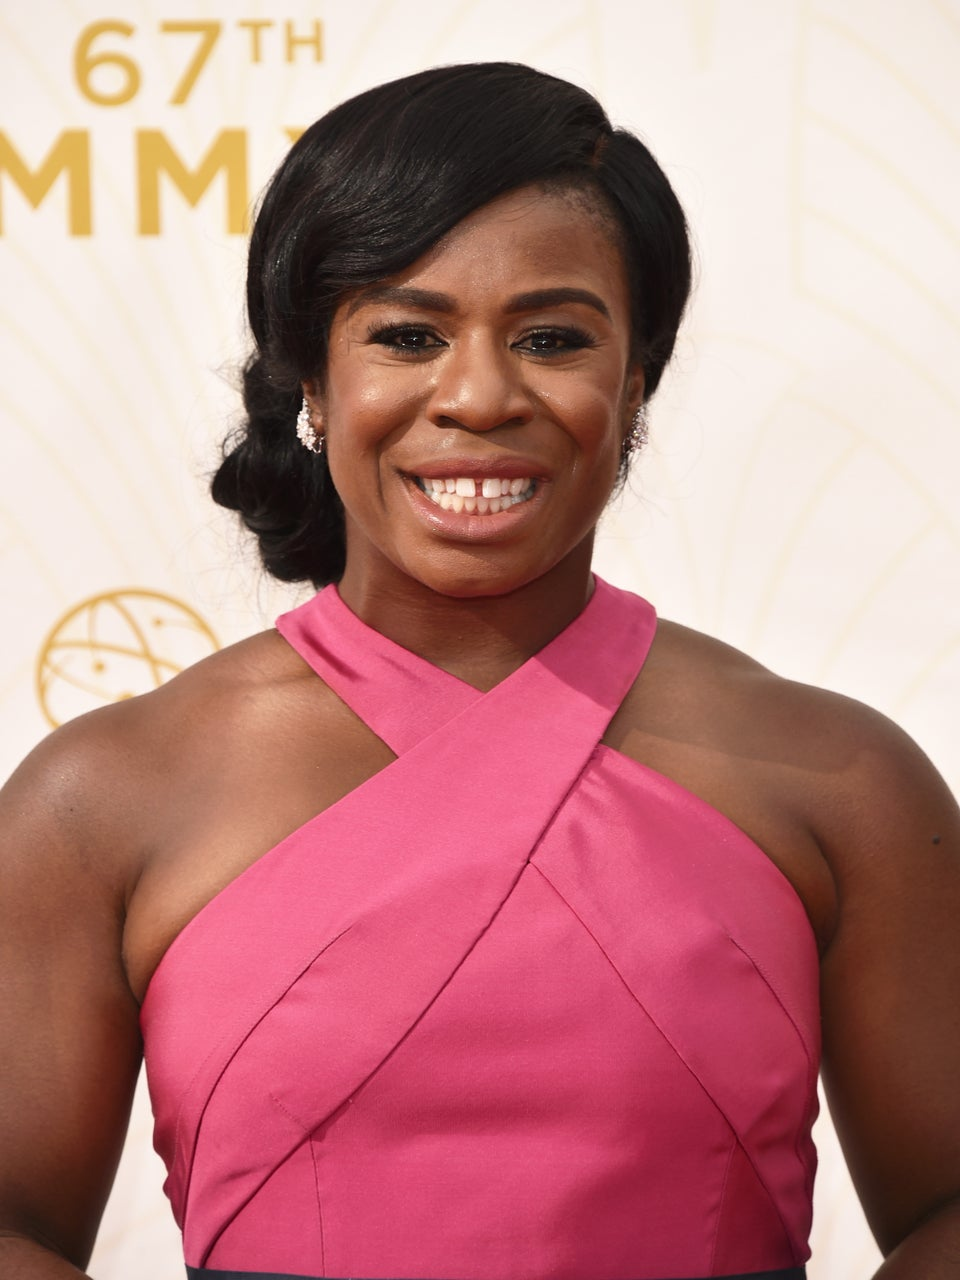 Uzo Aduba, Viola Davis, and Idris Elba Earn SAG Award Nominations